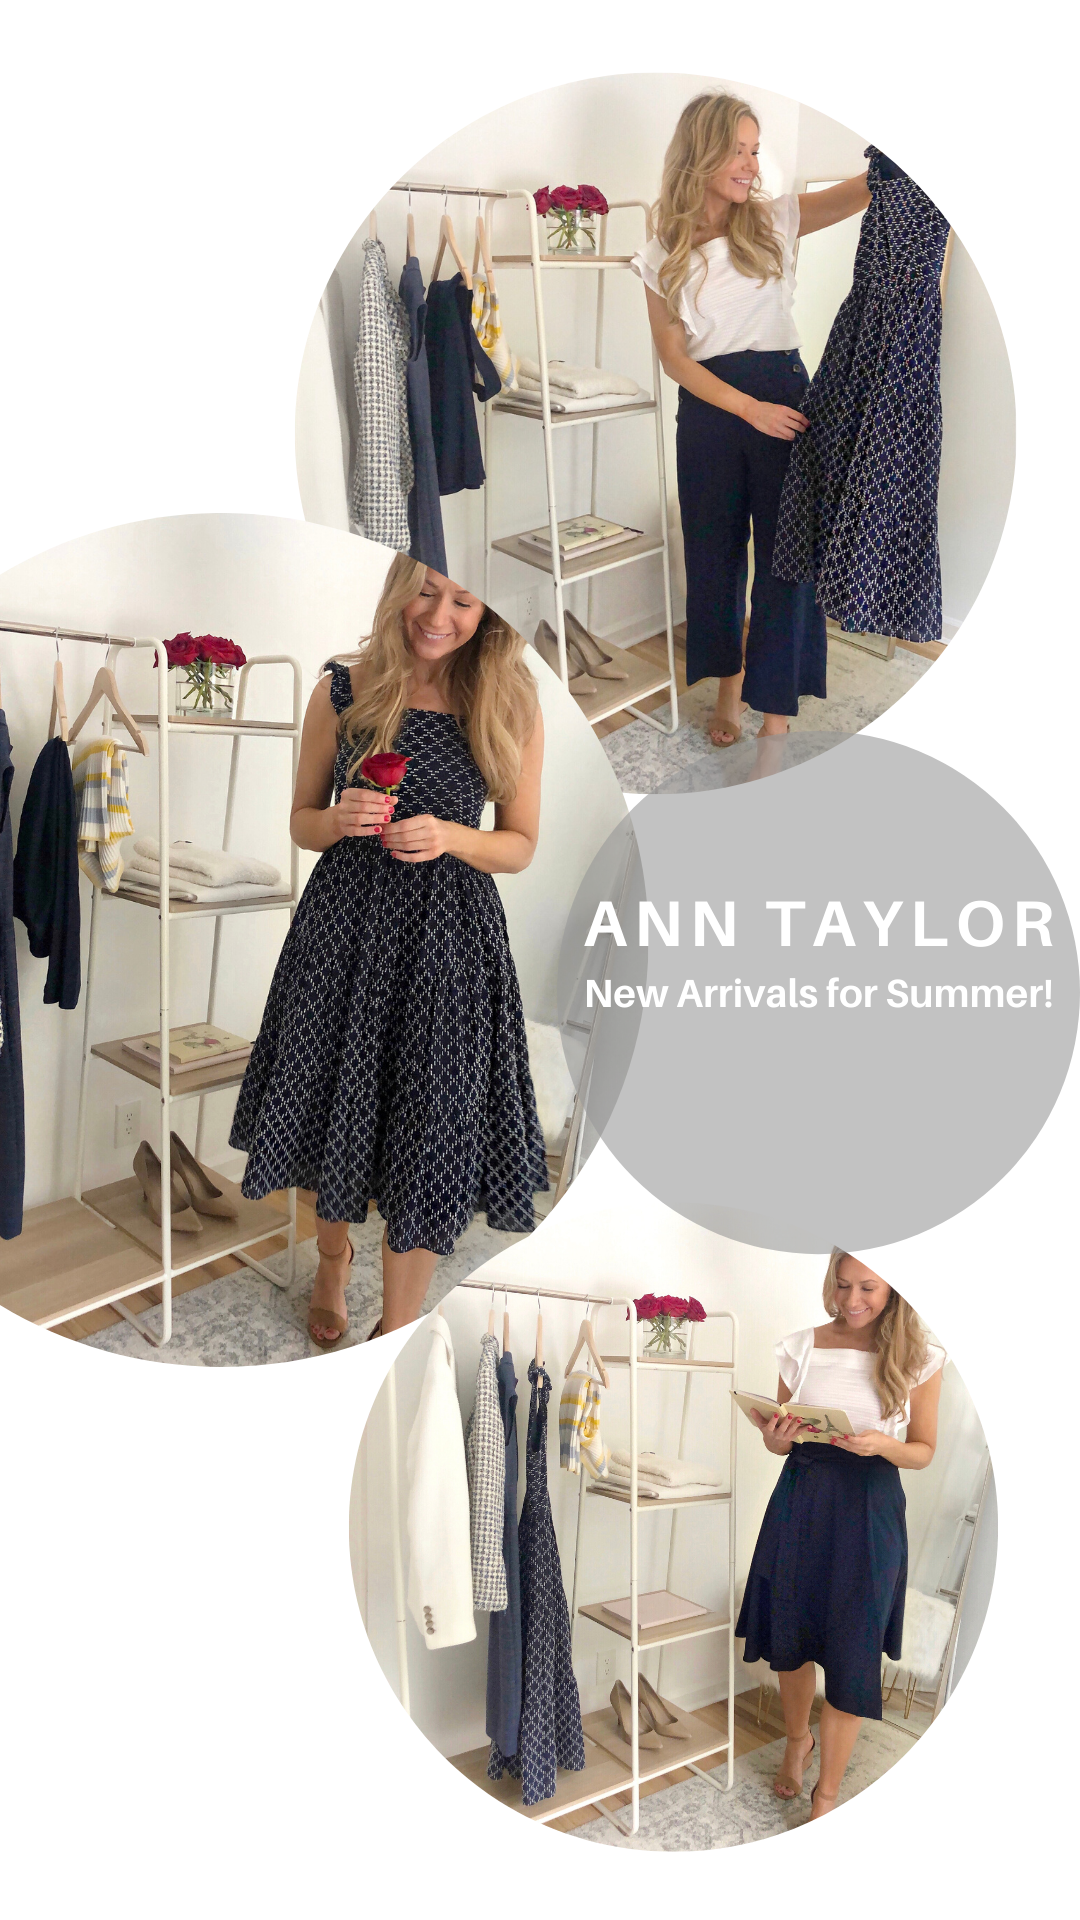 Ann Taylor New Arrivals for Summer!